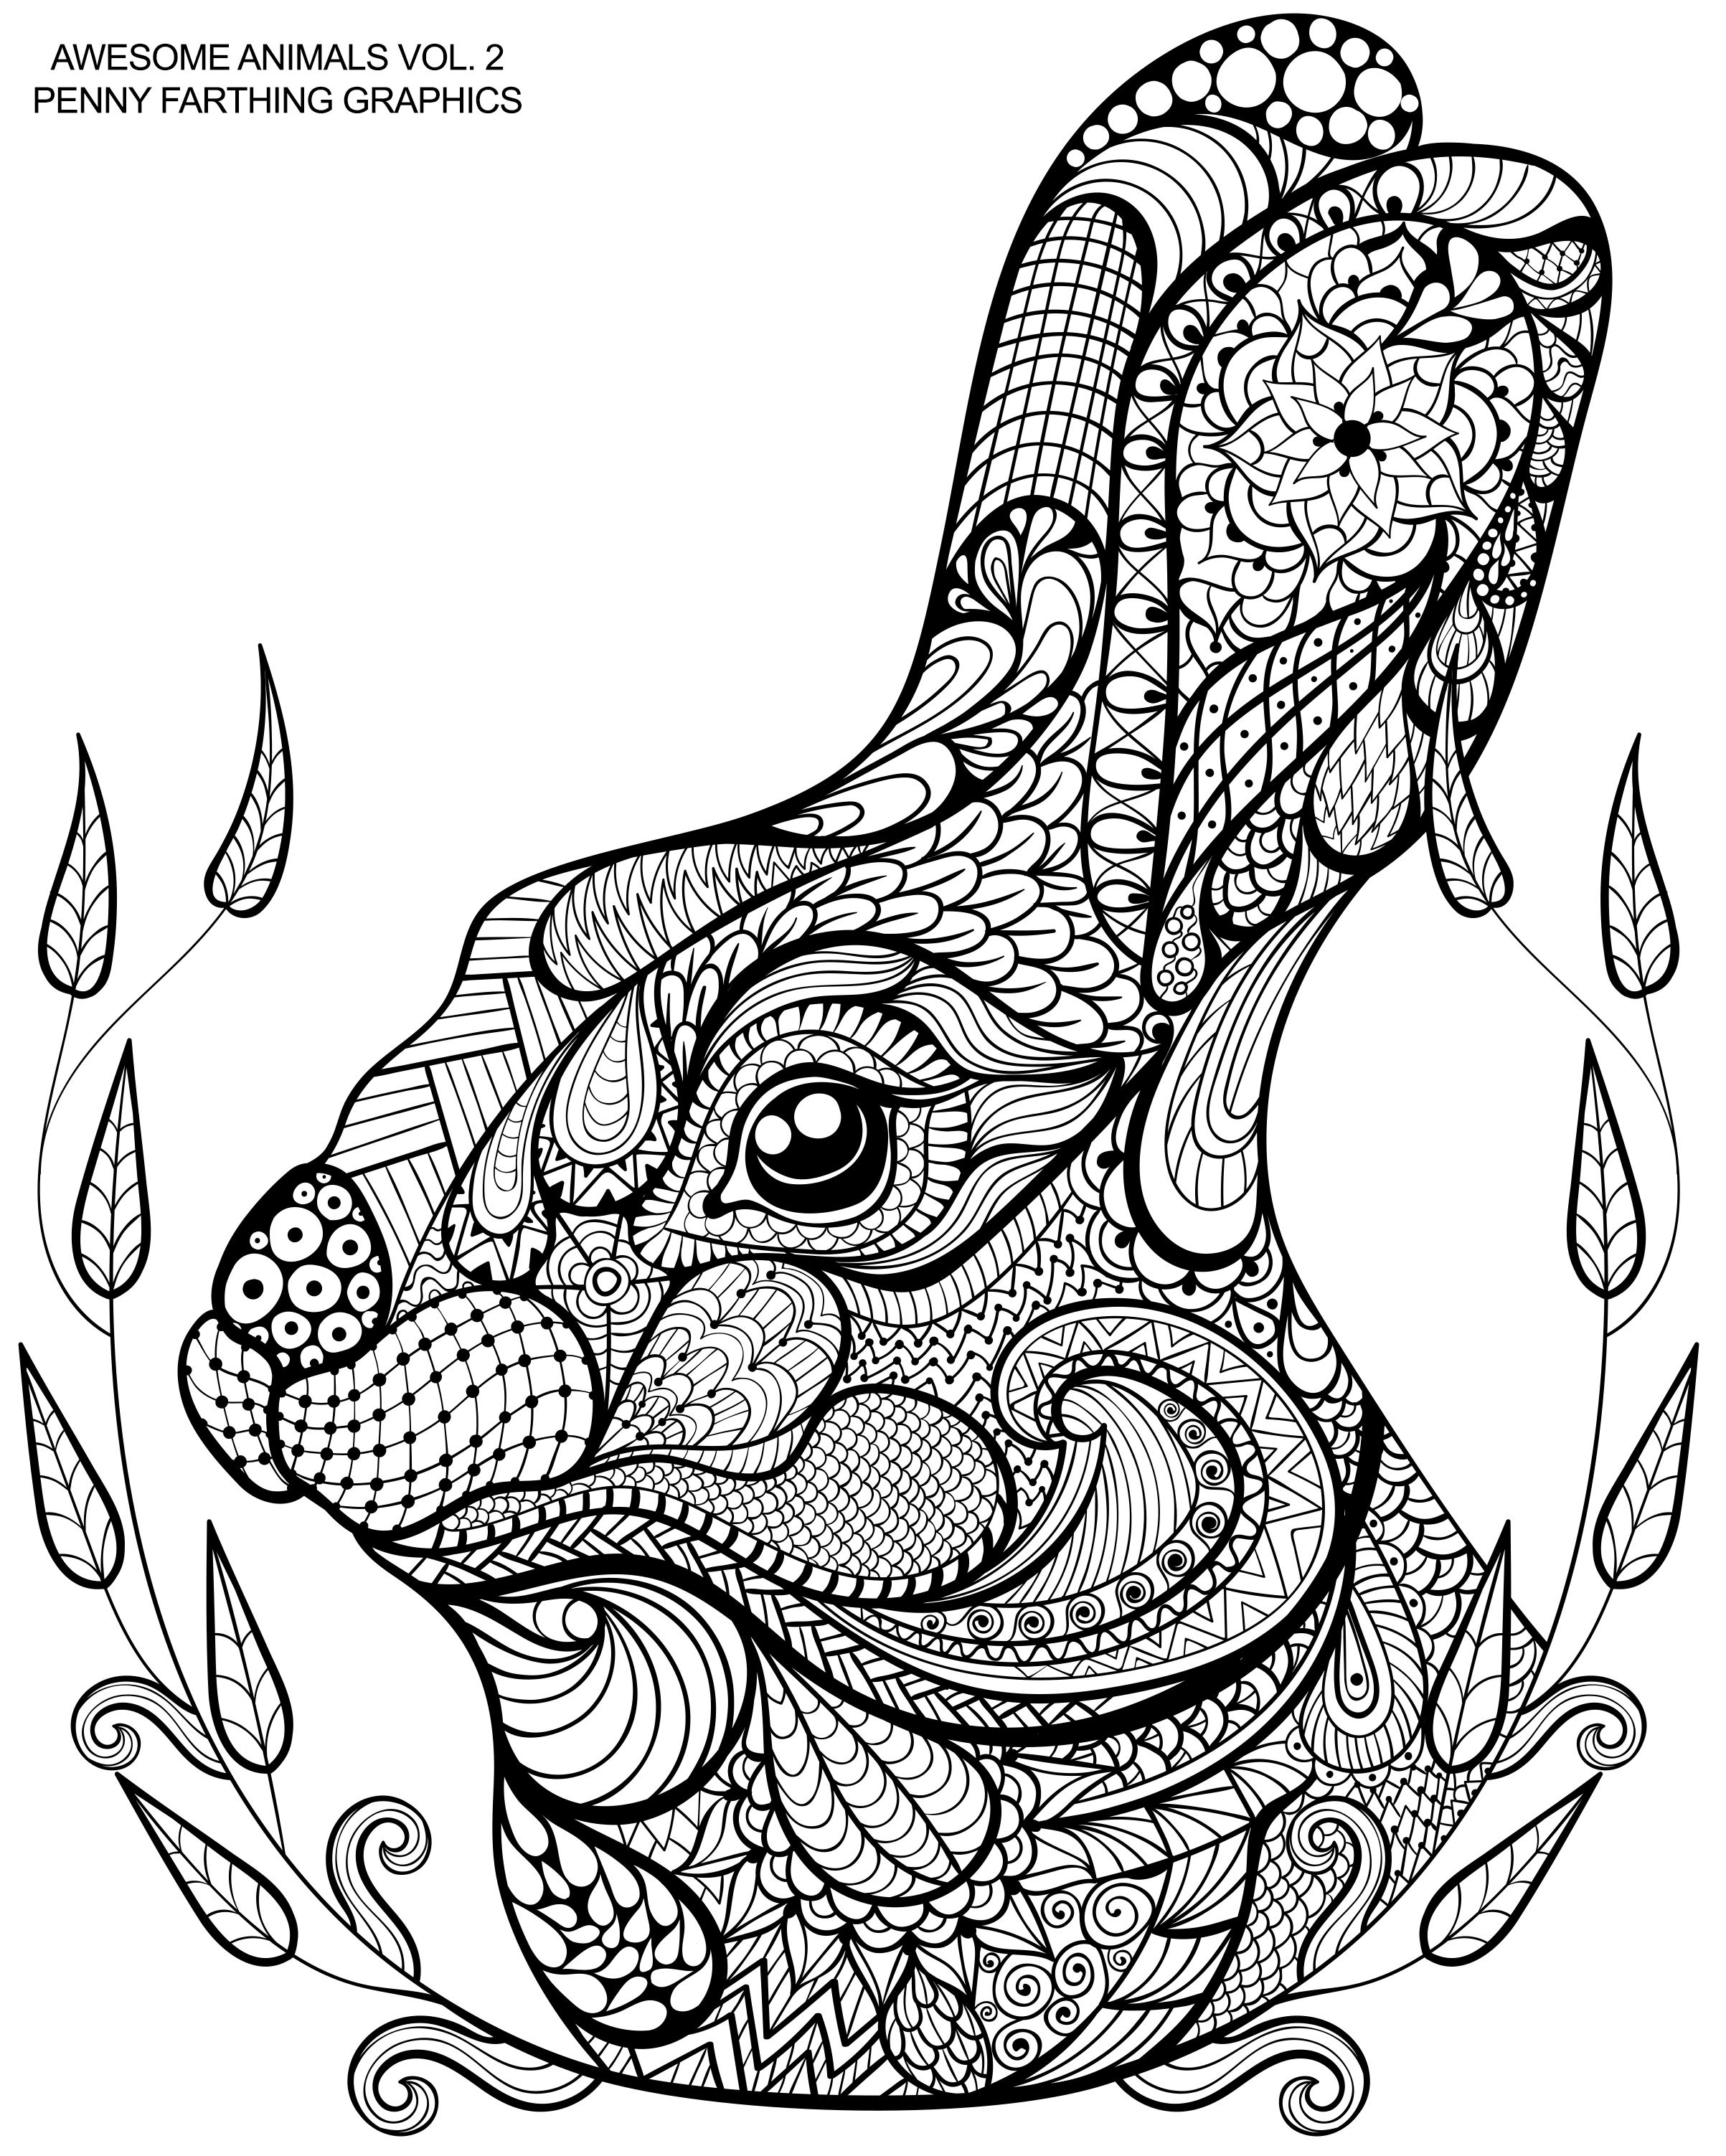 Cute Bunny From Awesome Animals Vol 2 Mandala Coloring Pages Dragon Coloring Page Animal Coloring Pages